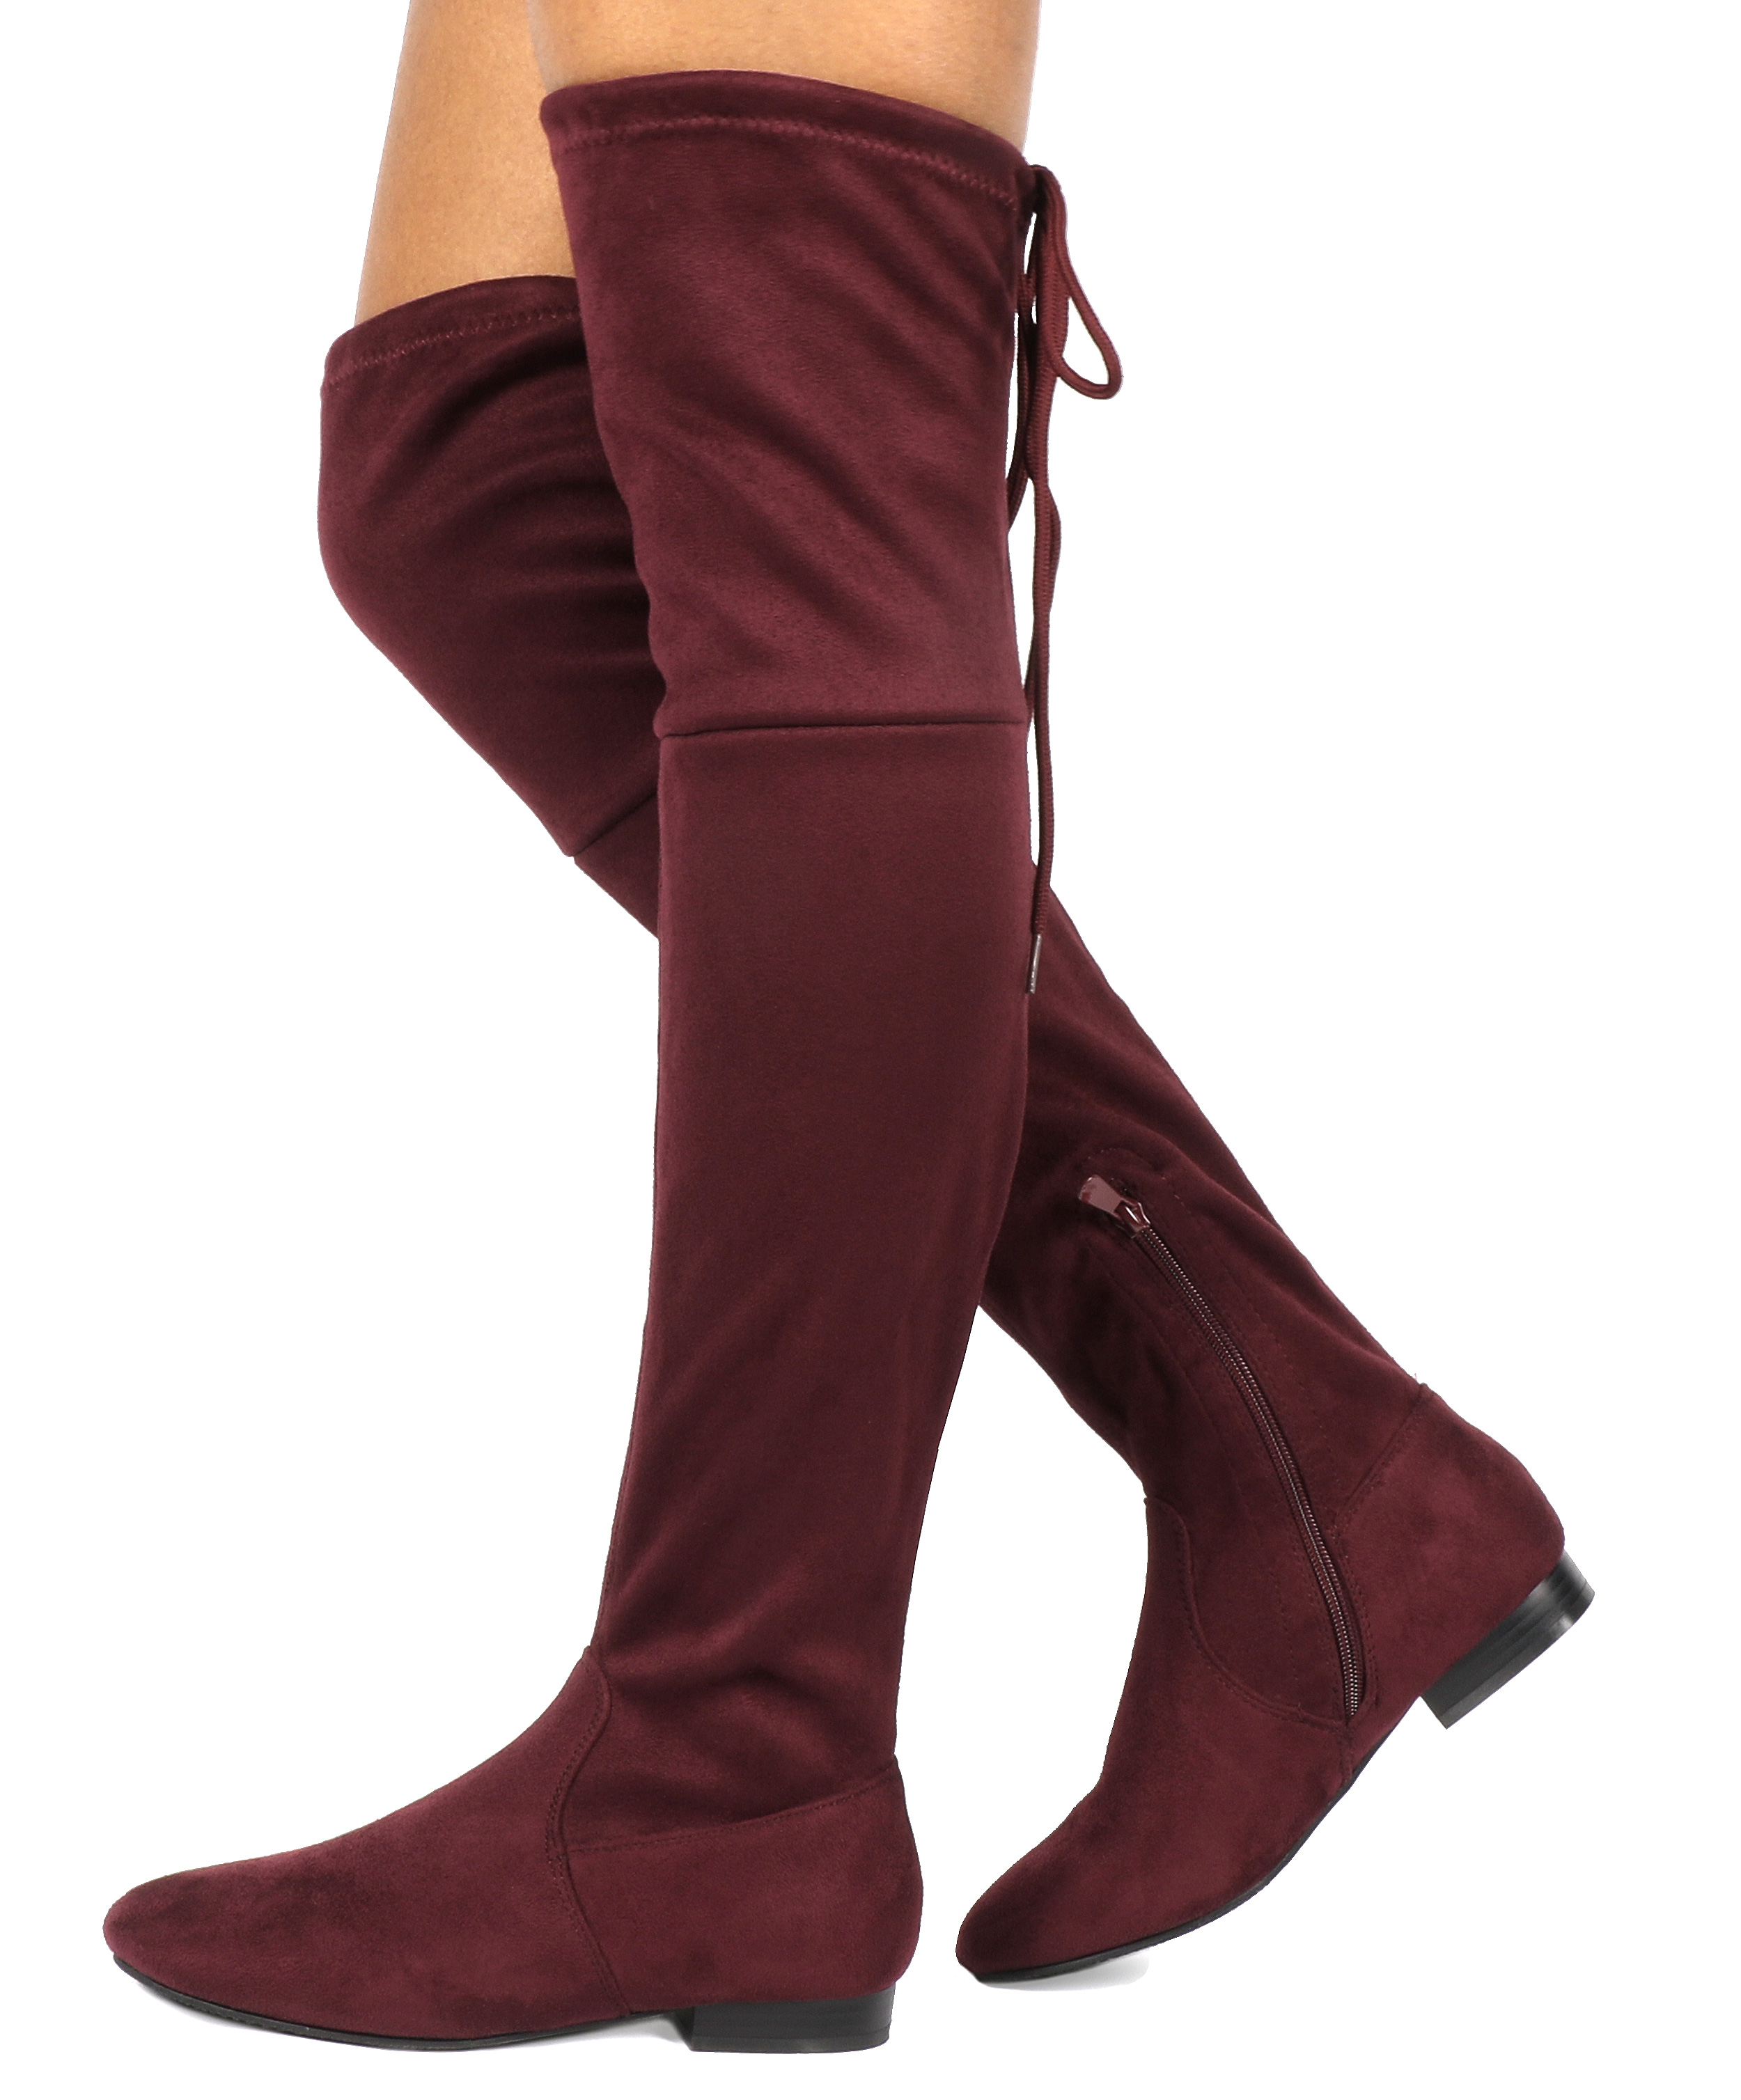 Women-Thigh-High-Flat-Boots-Stretchy-Drawstring-Tie-Fashion-Over-The-Knee-Boots miniatuur 7